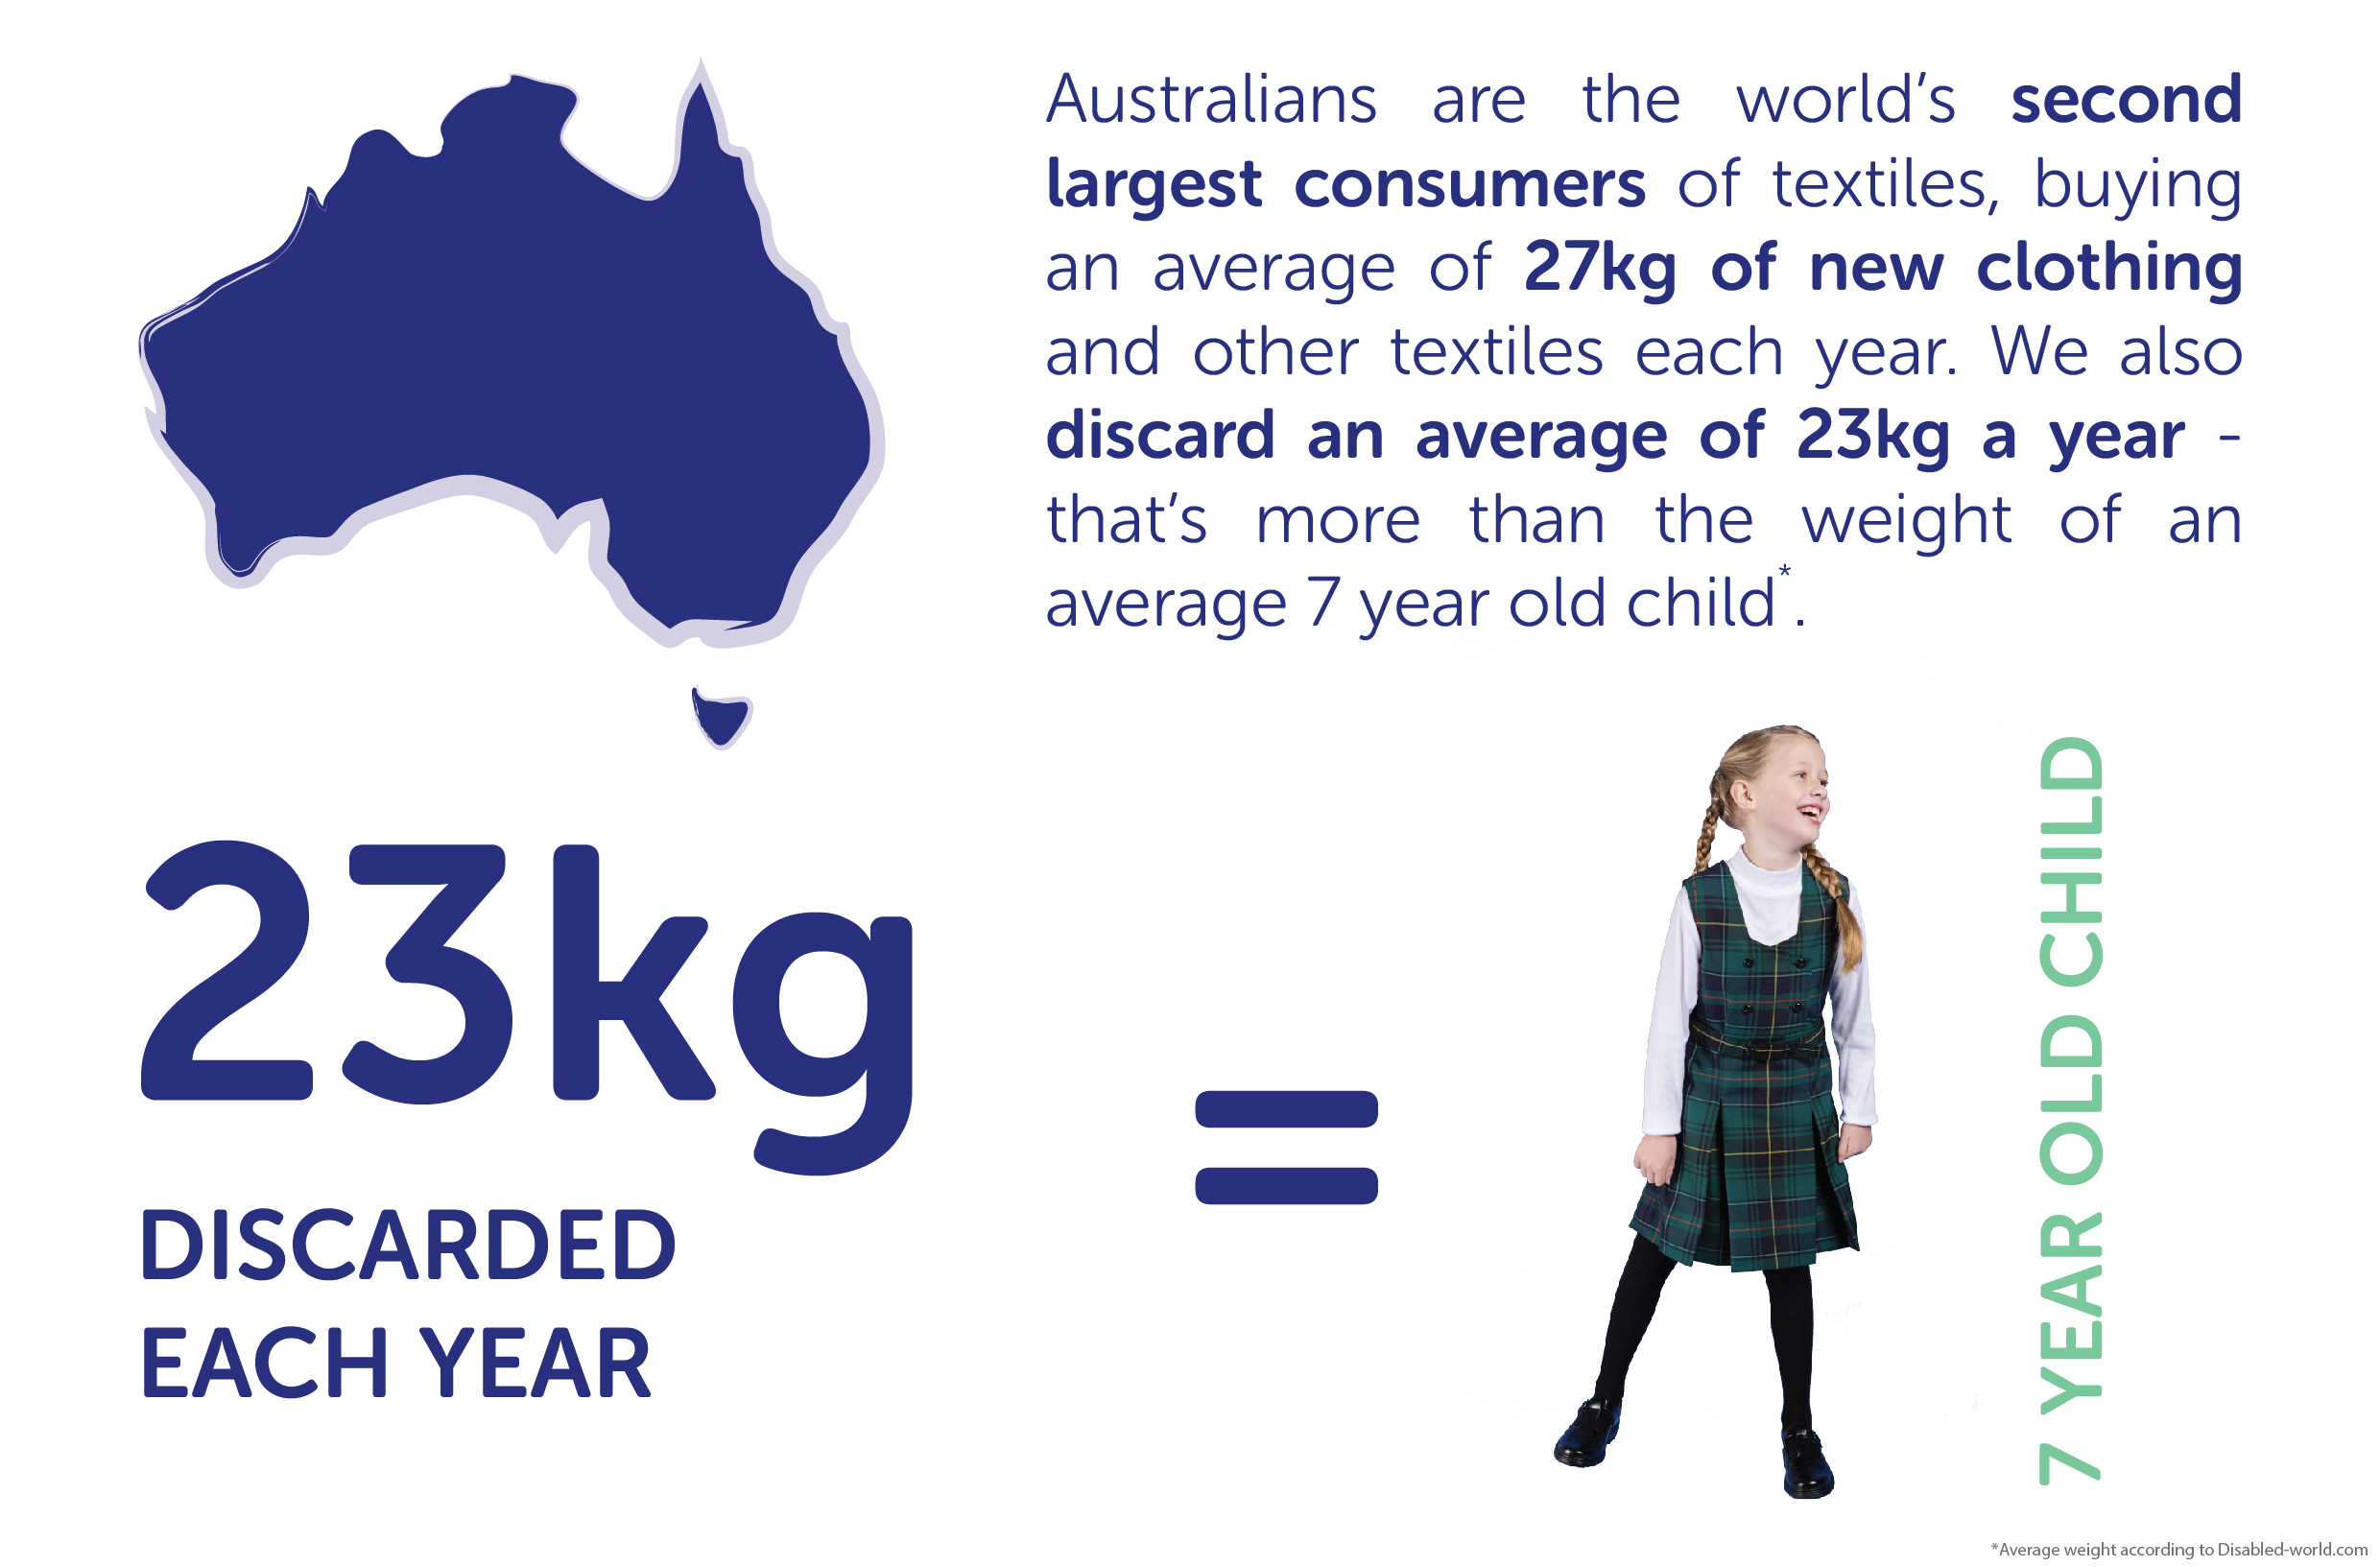 Australians are the world's second largest consumers of textiles, buying an average of 27kg of new clothing and other textiles each year. We also discard an average of 23kg a year - that's more than the weight of an average 7 year old child.